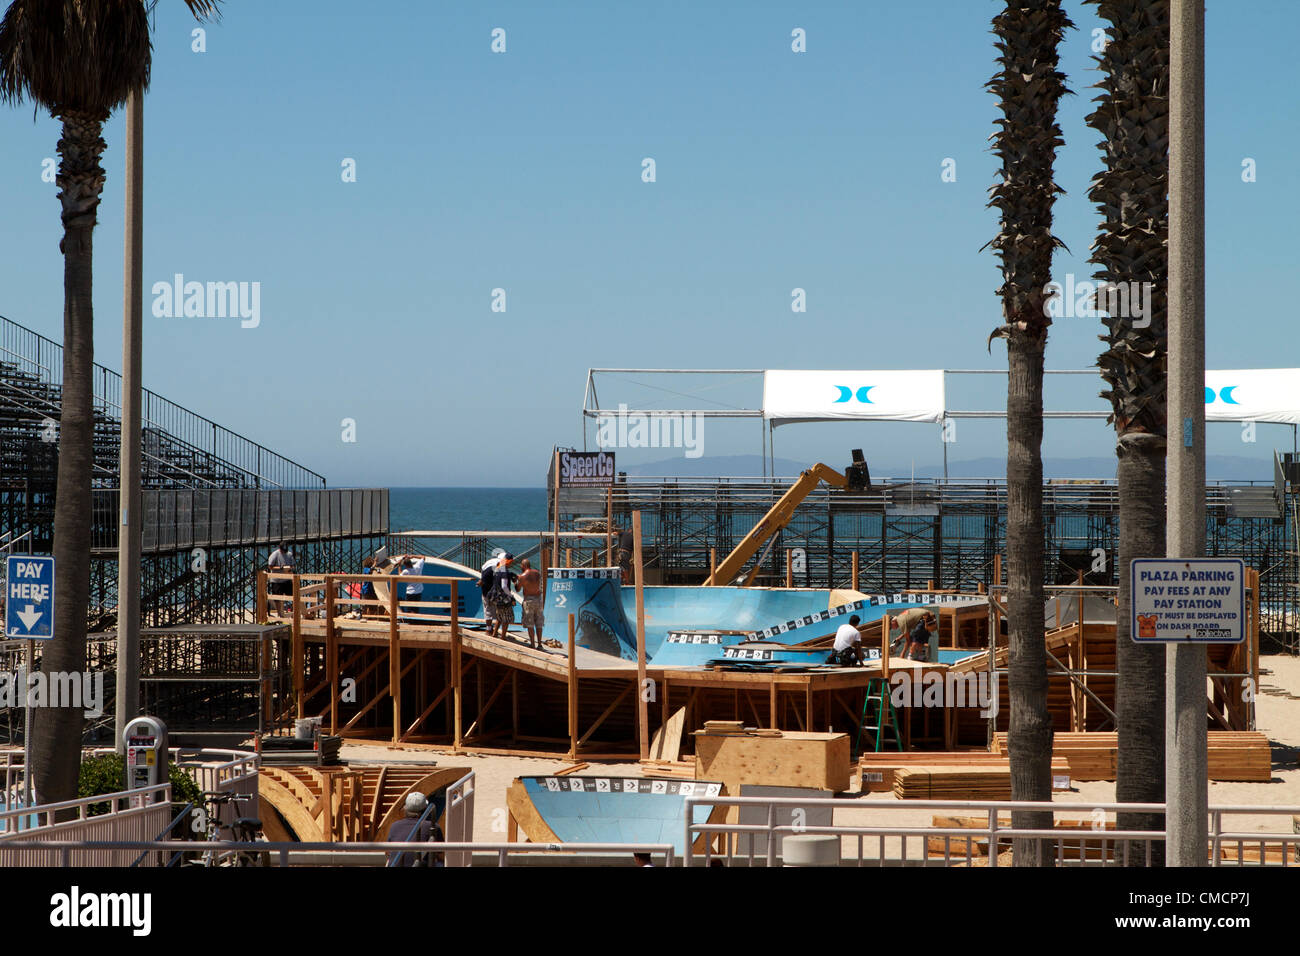 July 19th 2012  Construction crews work on erecting the stands, stadiums  and bleachers south of Huntington Beach Stock Photo